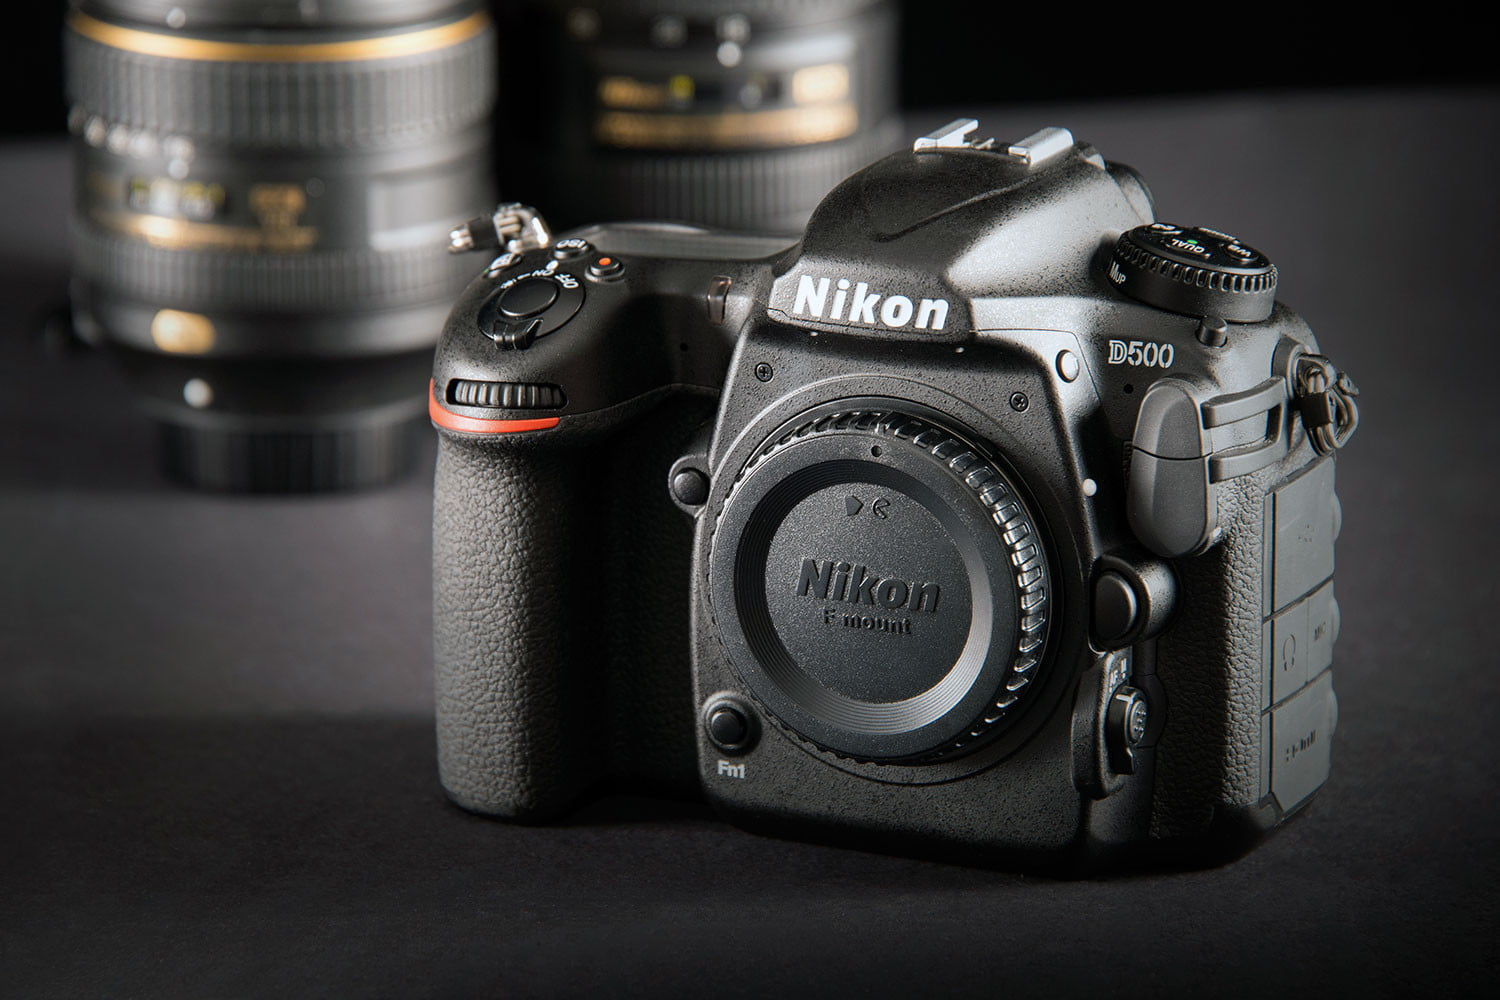 digital camera buying guide what to look for what to avoid